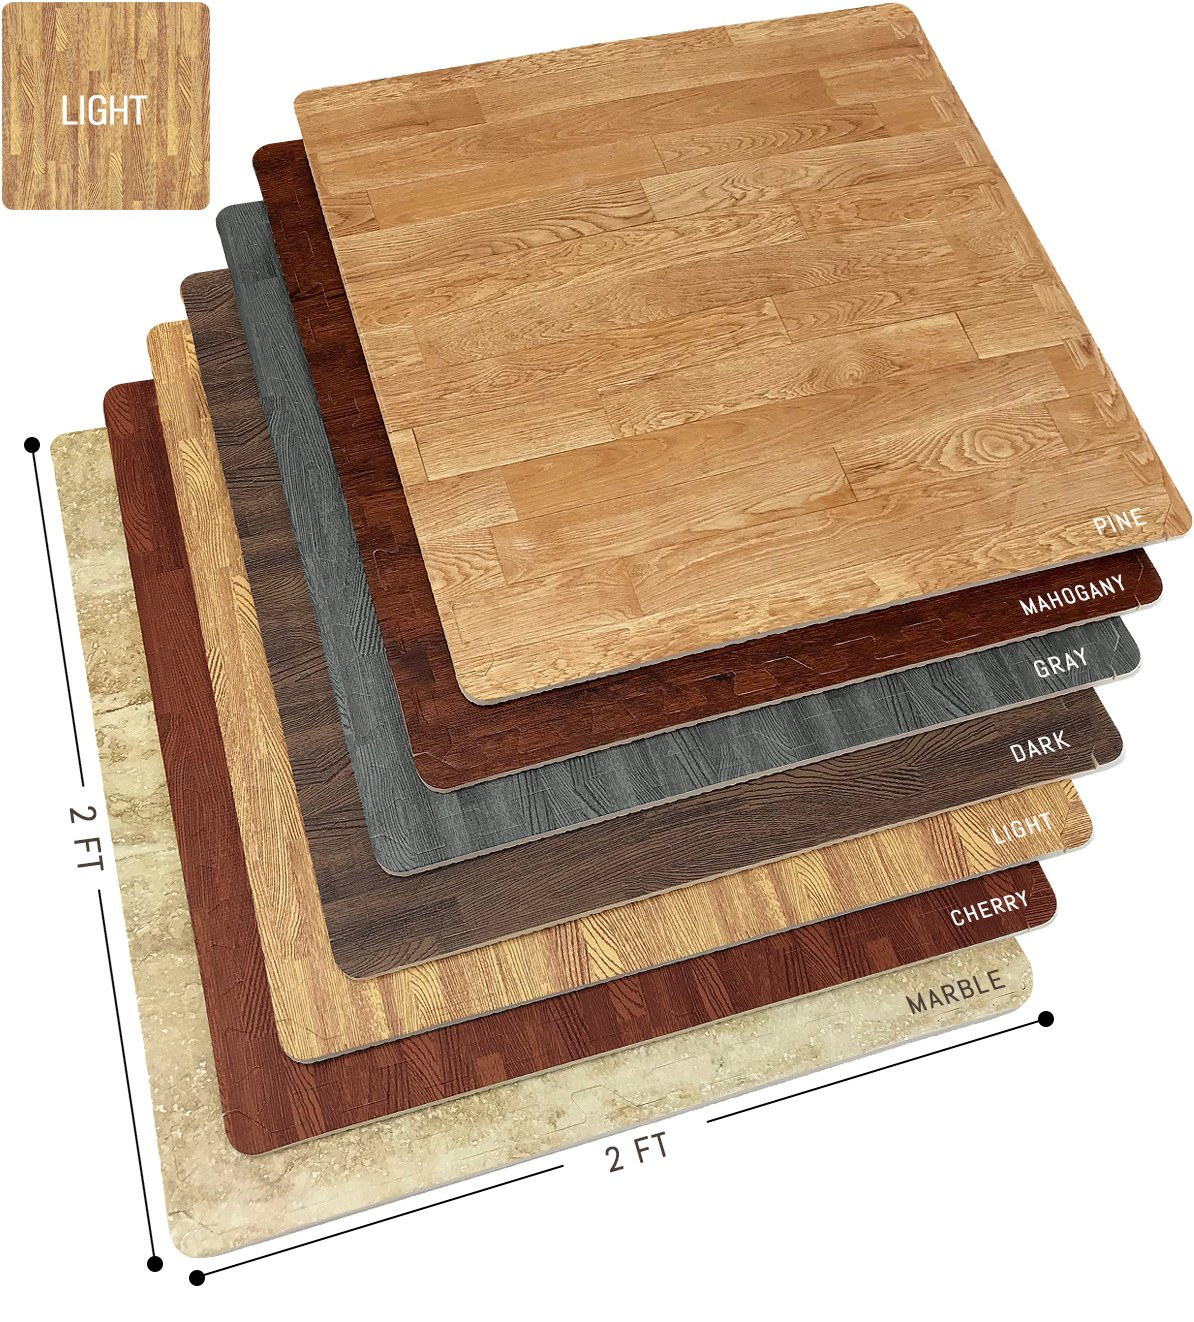 Sorbus Wood Floor Mats Foam Interlocking Wood Mats Each Tile 4 Square Feet 3/8-Inch Thick Puzzle Wood Tiles with Borders - for Home Office Playroom Basement (4 Tiles 16 Sq ft, Wood Grain - Light)